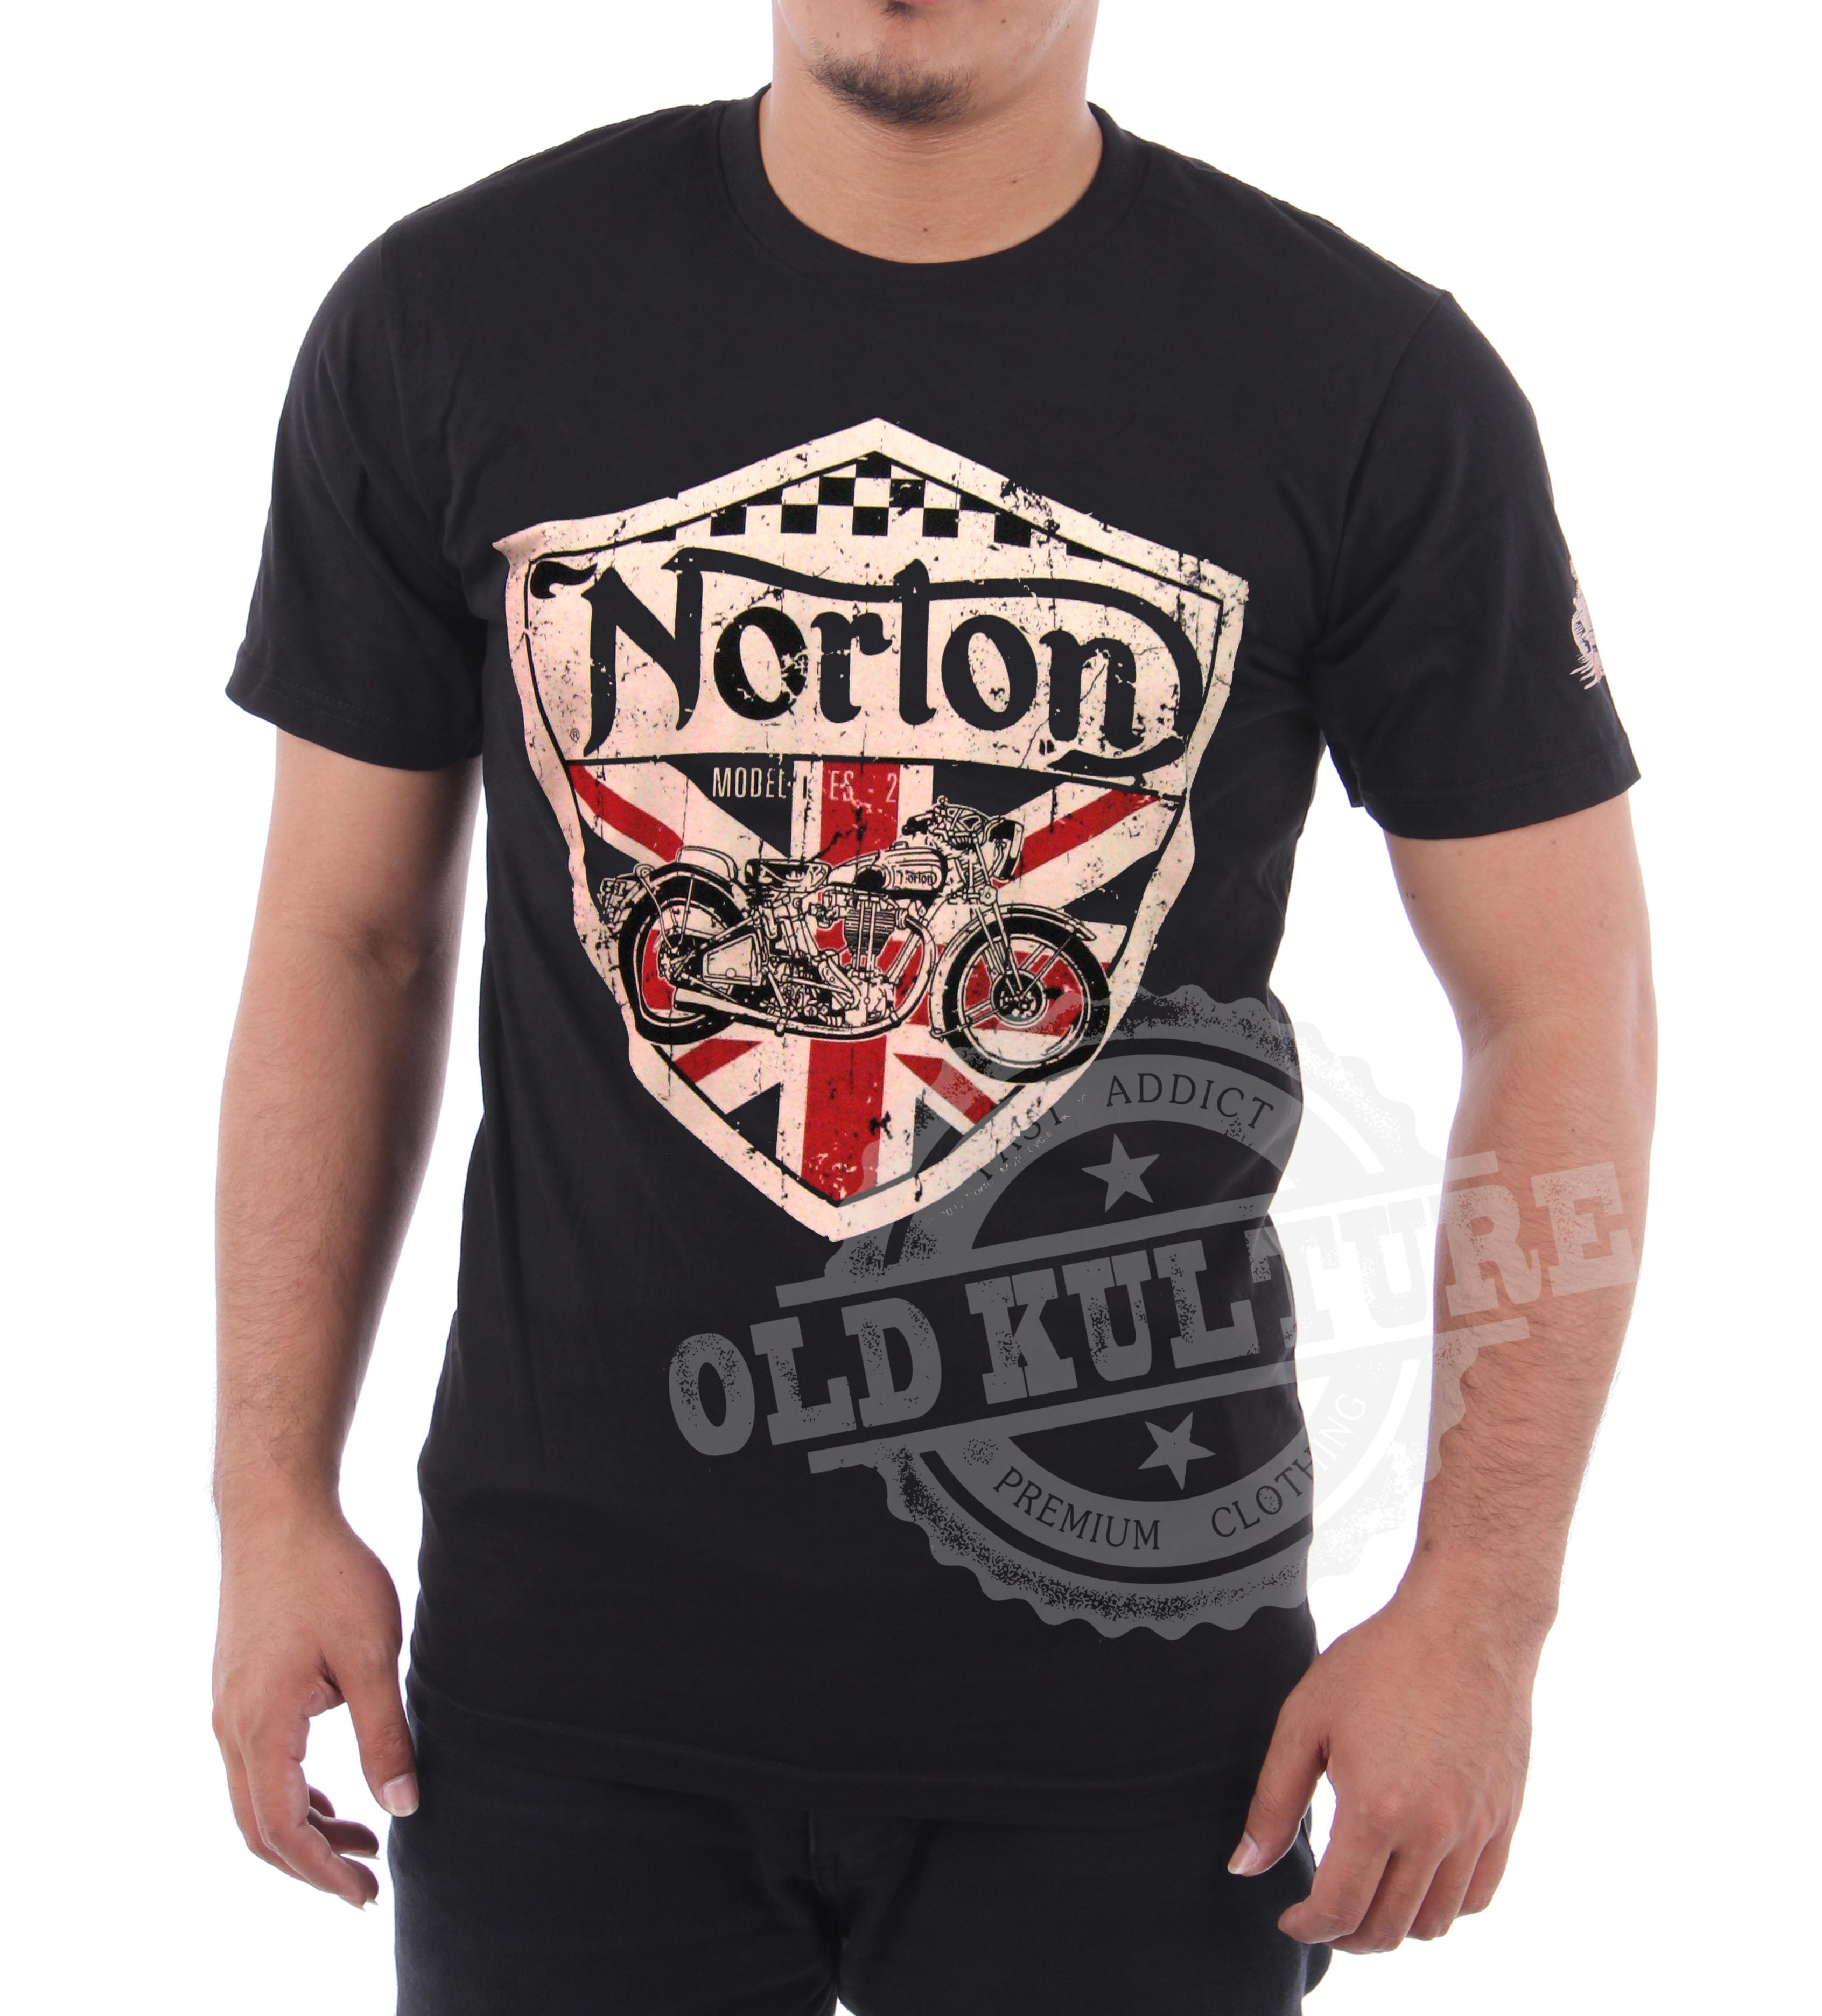 cafe racer norton motorcycle t shirt available now hot. Black Bedroom Furniture Sets. Home Design Ideas